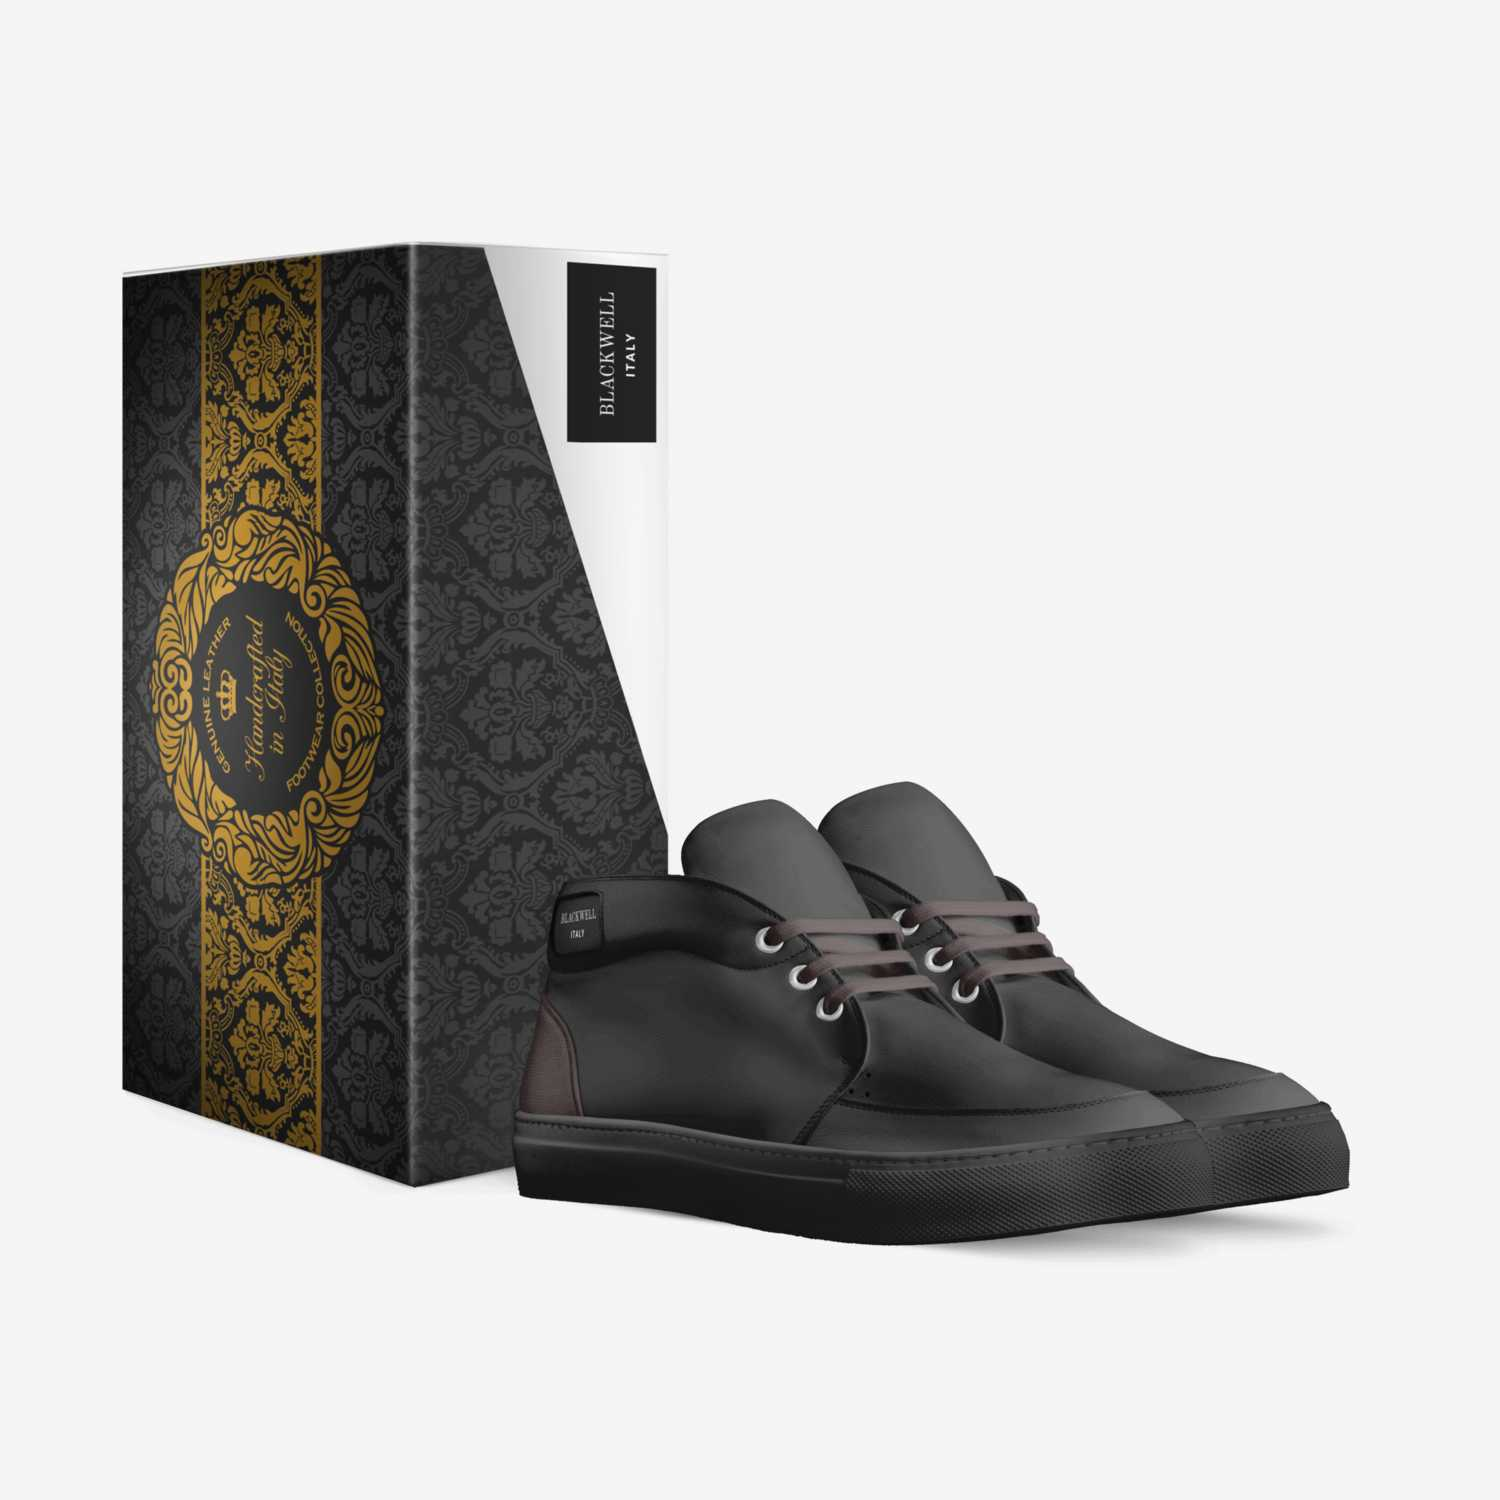 Dark Black custom made in Italy shoes by Lawrence D. Blackwell | Box view